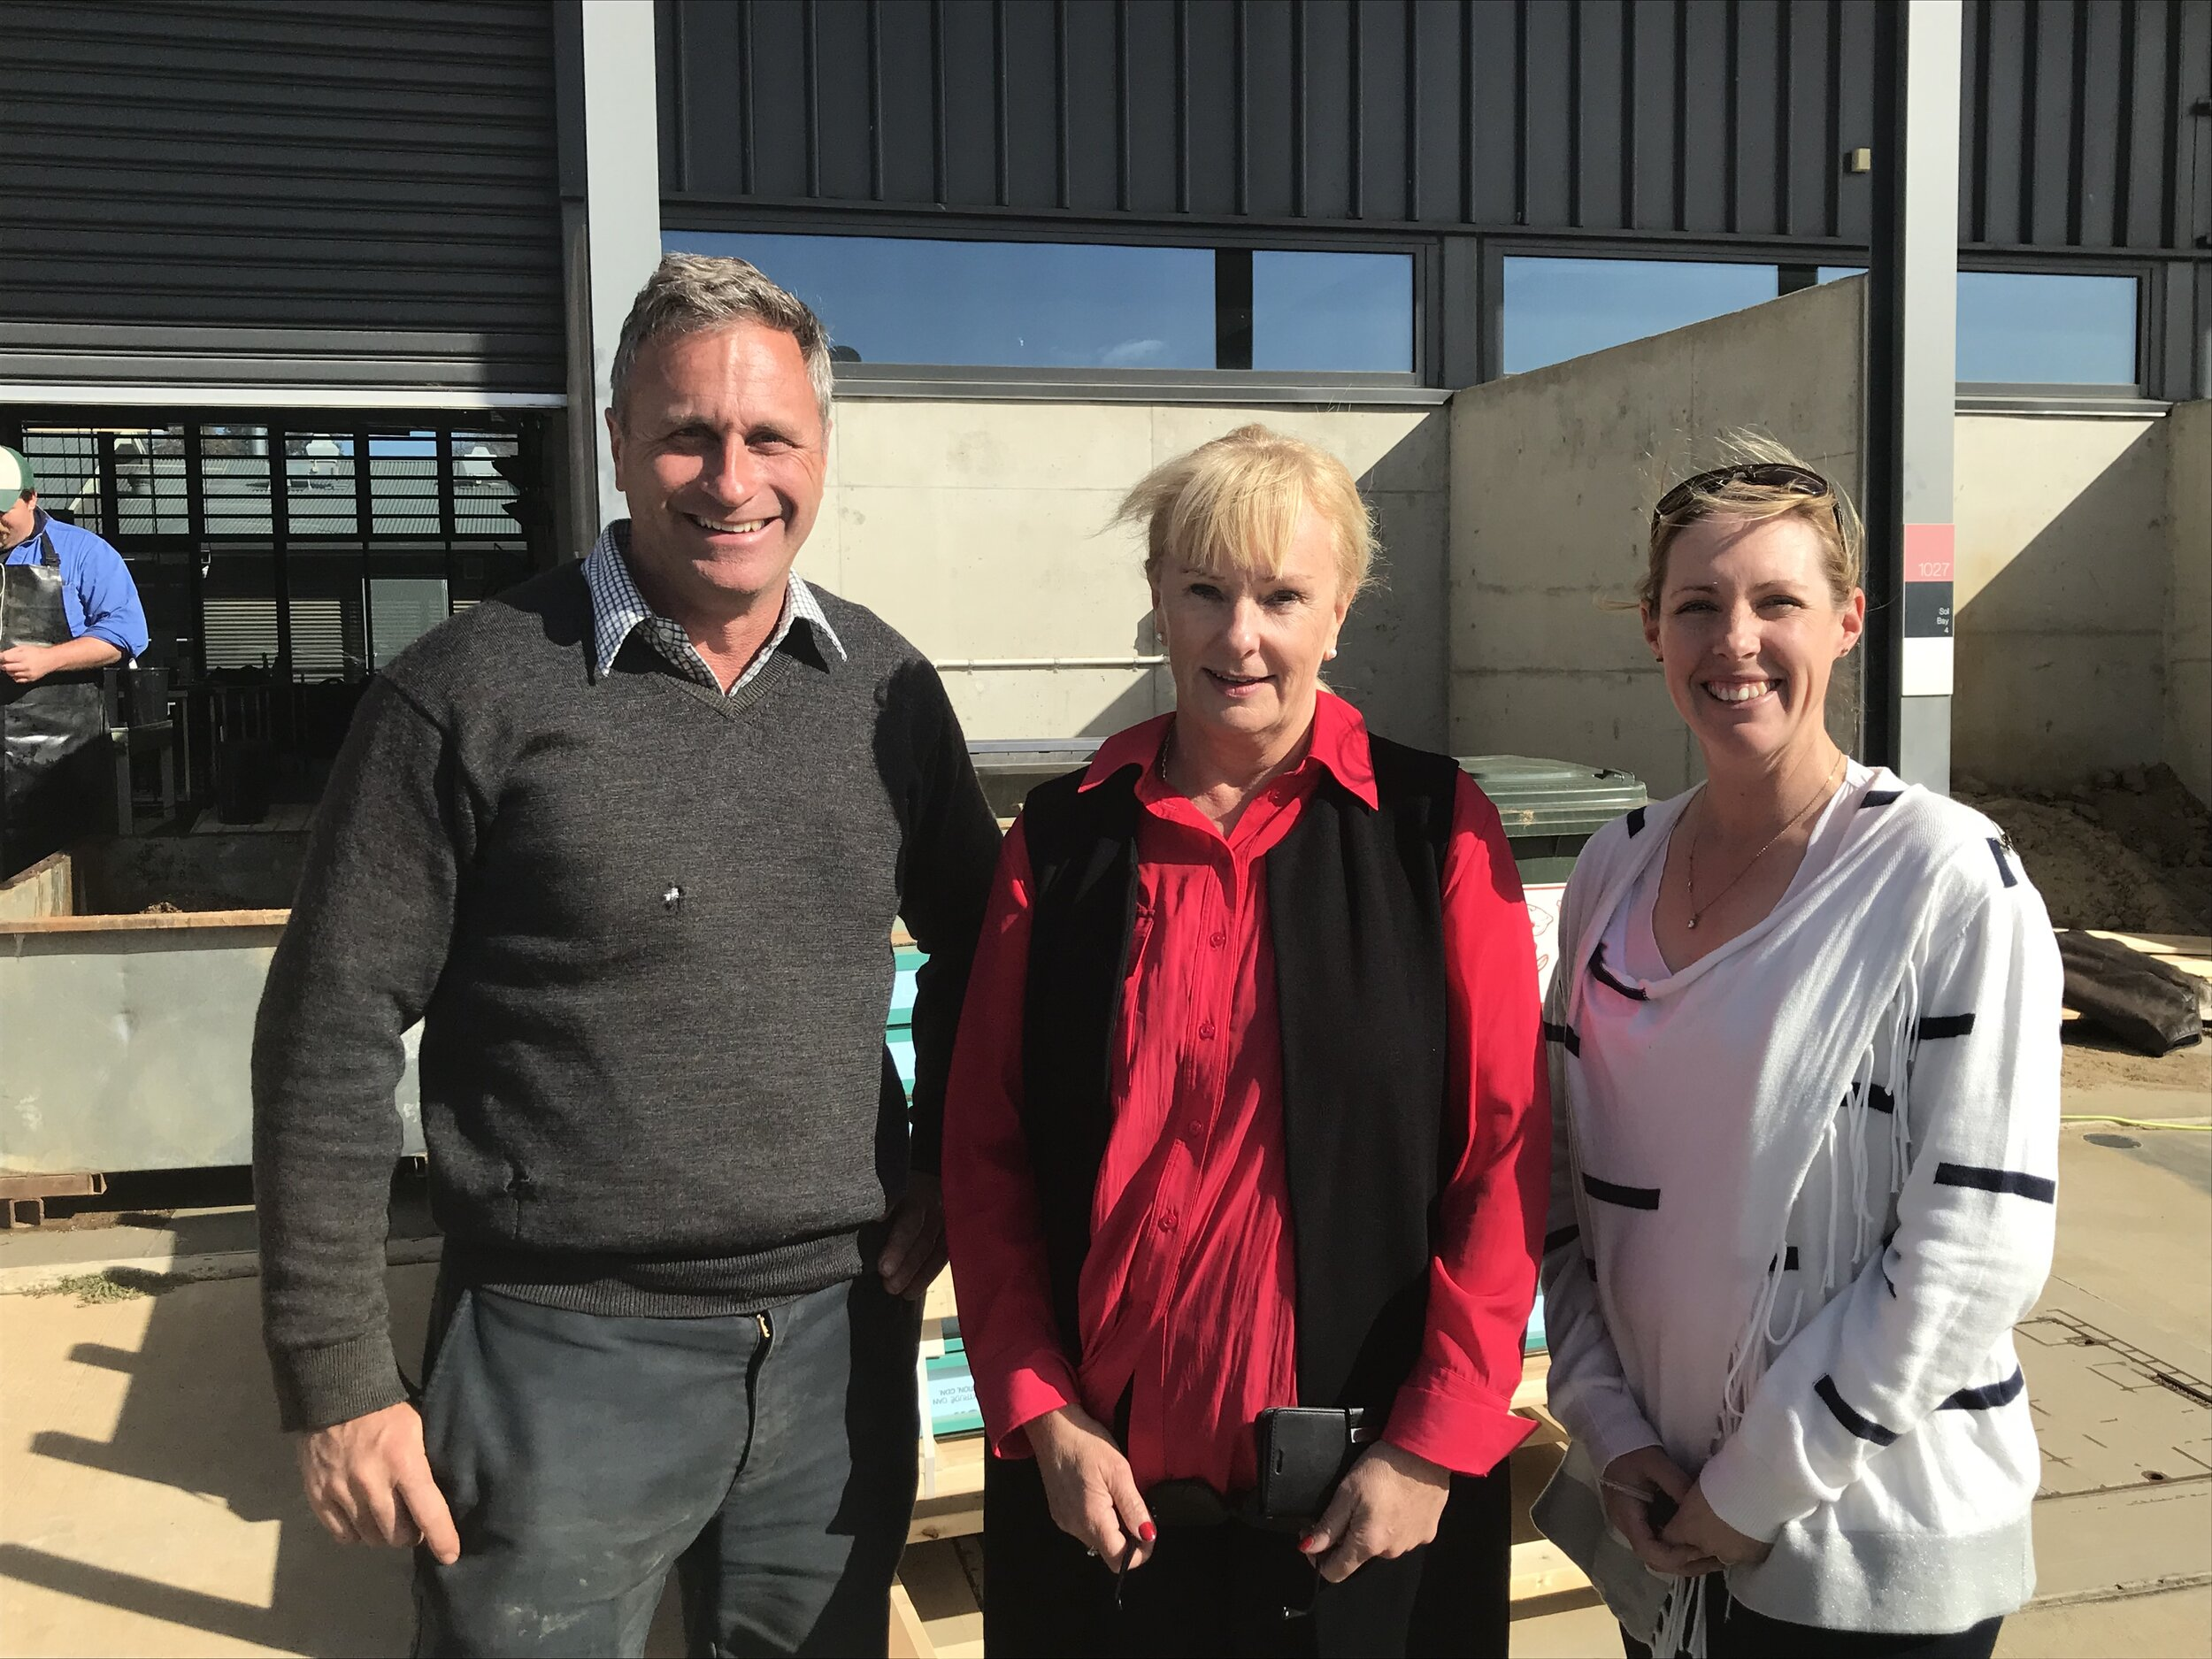 Charles Sturt University's Chancellor, Dr Michele Allan (centre), met with some of the DBEE staff and visited the climate-controlled mass rearing facility on the 22 August 2019. Also pictured are James Stephens and Dr Alison Southwell.